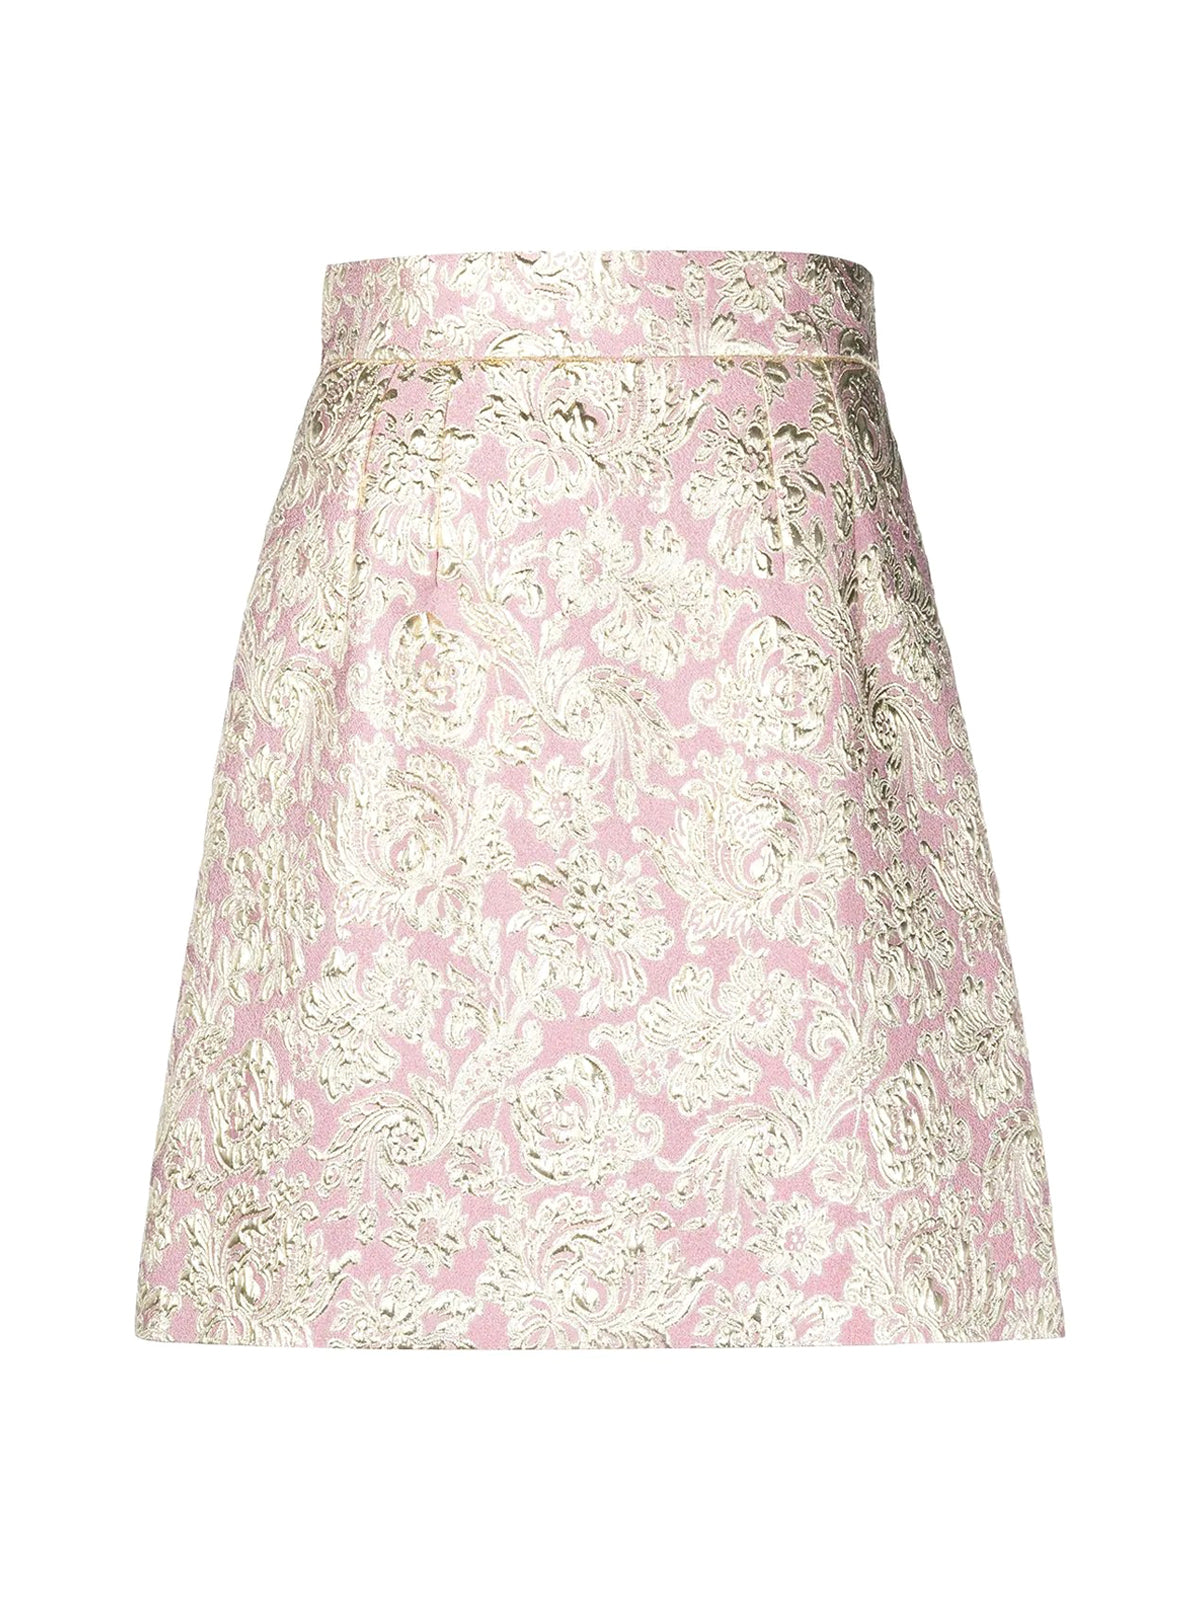 metallic finish jacquard skirt